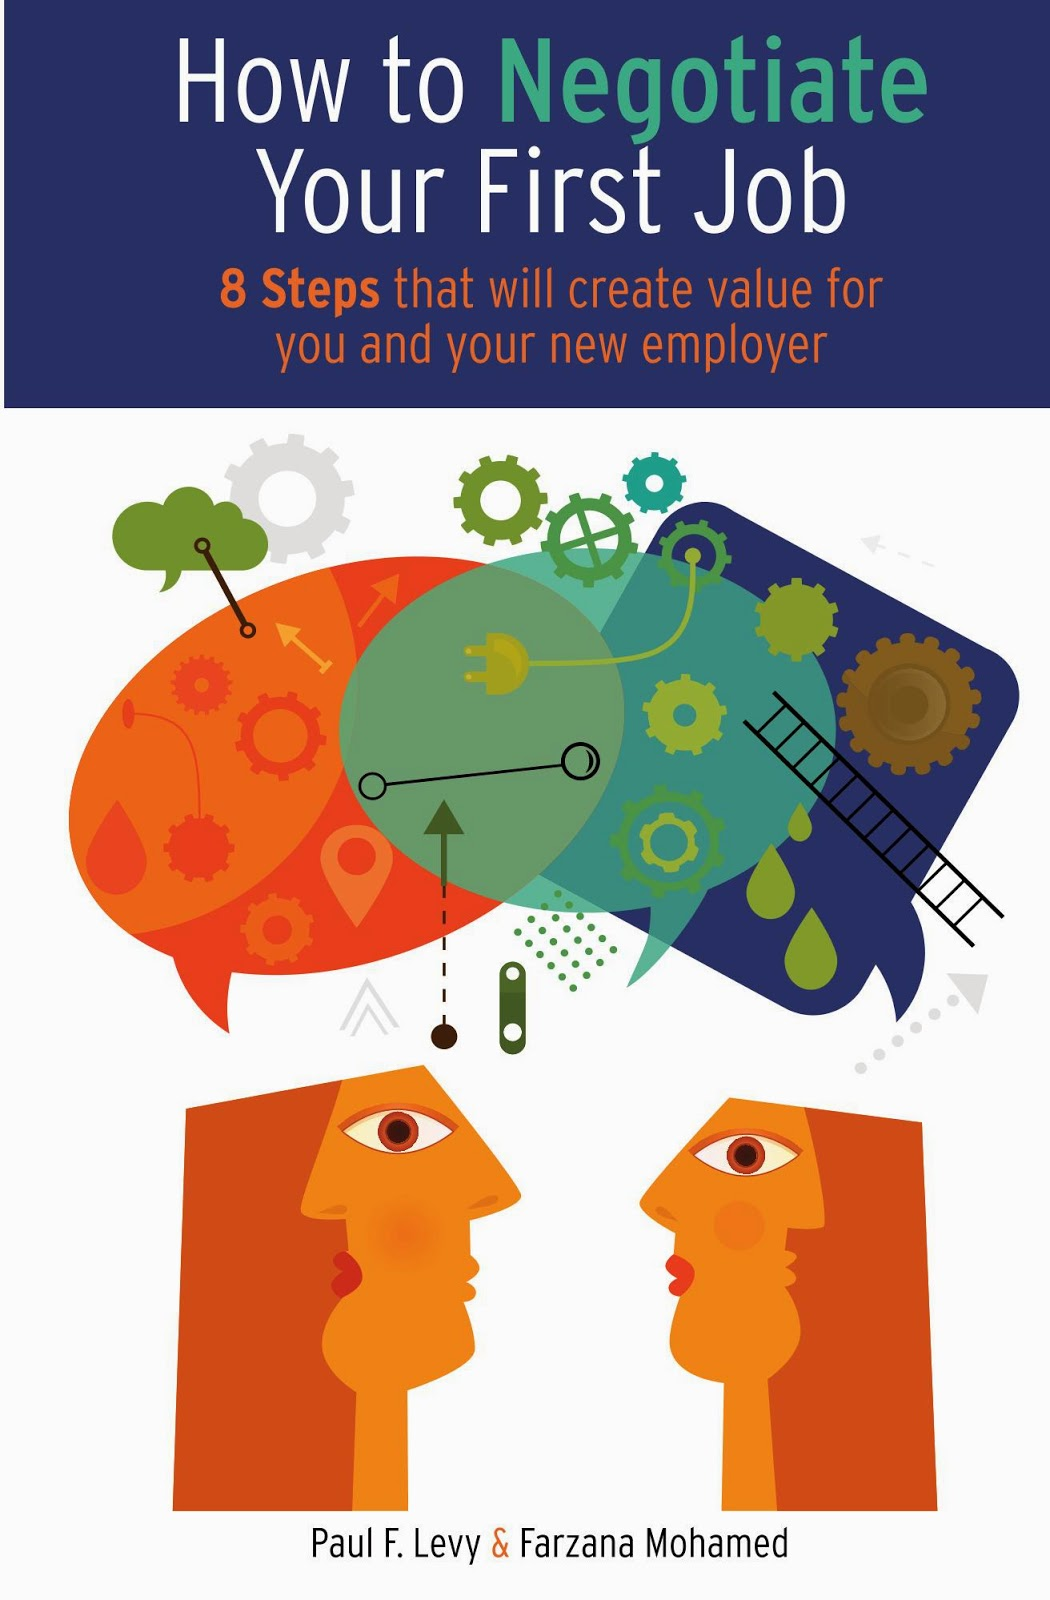 http://www.amazon.com/How-Negotiate-Your-First-Job/dp/0991271416/